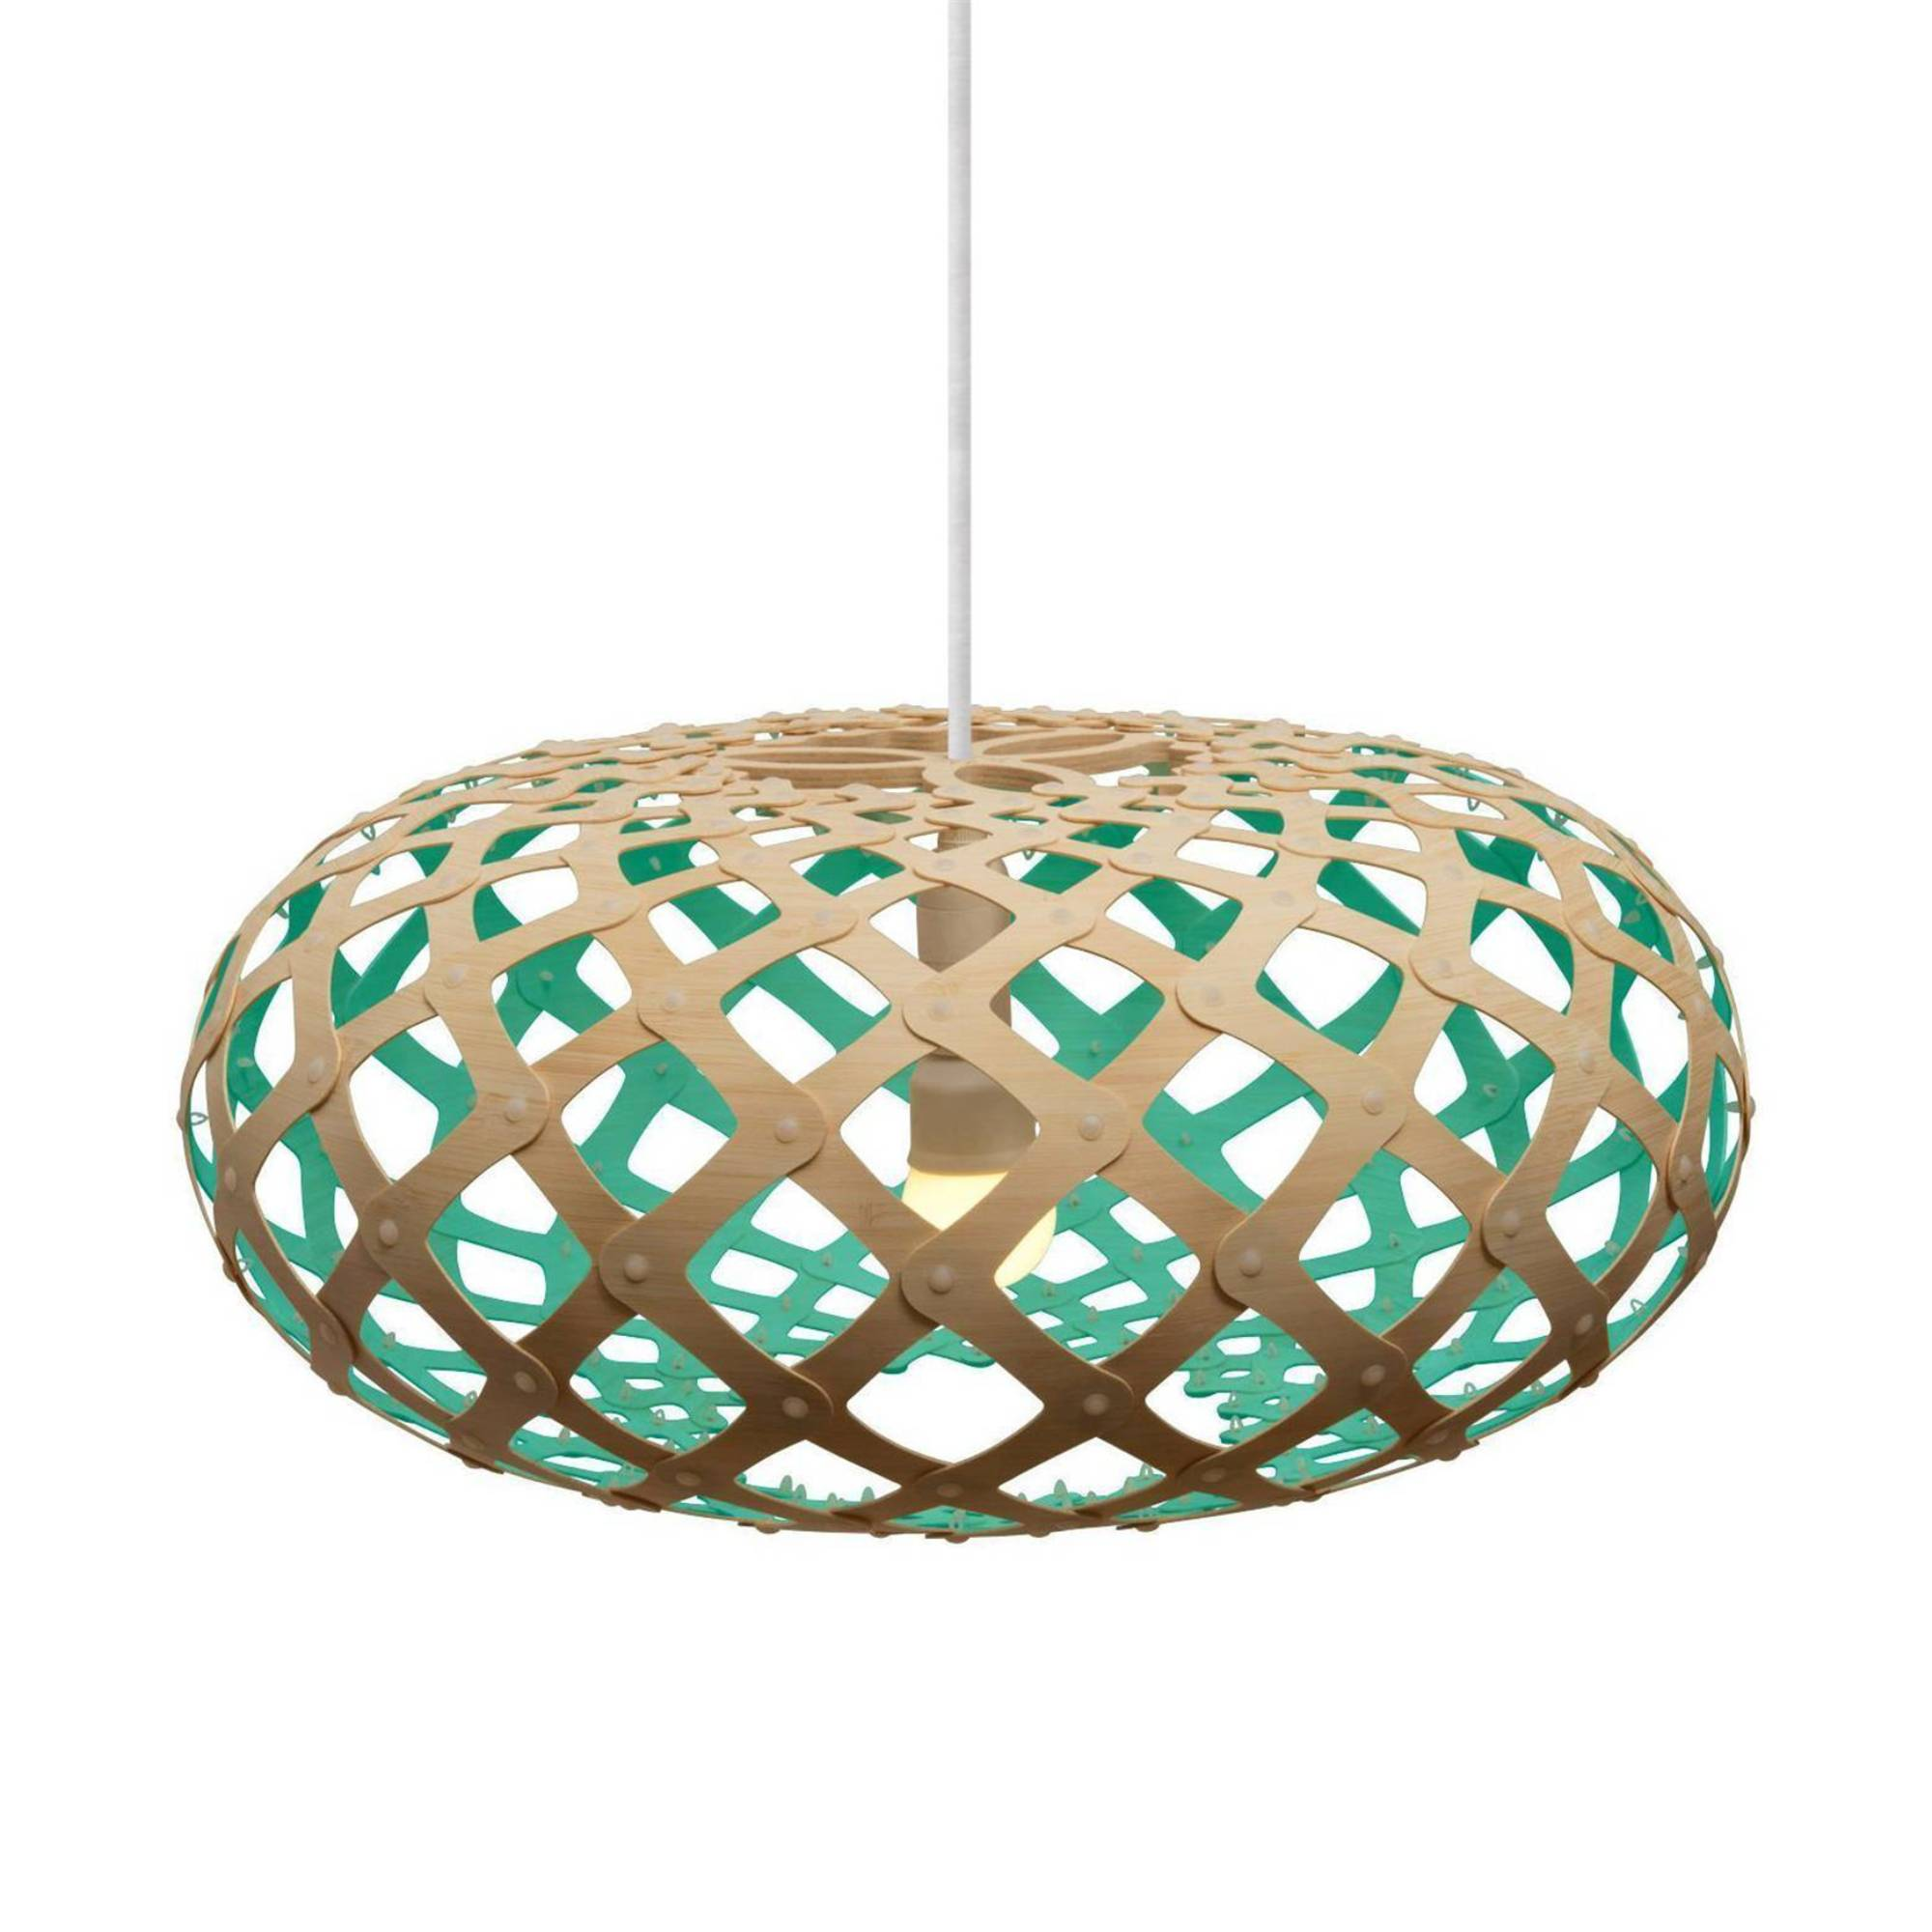 Kina Pendant Light: 800 + Aqua